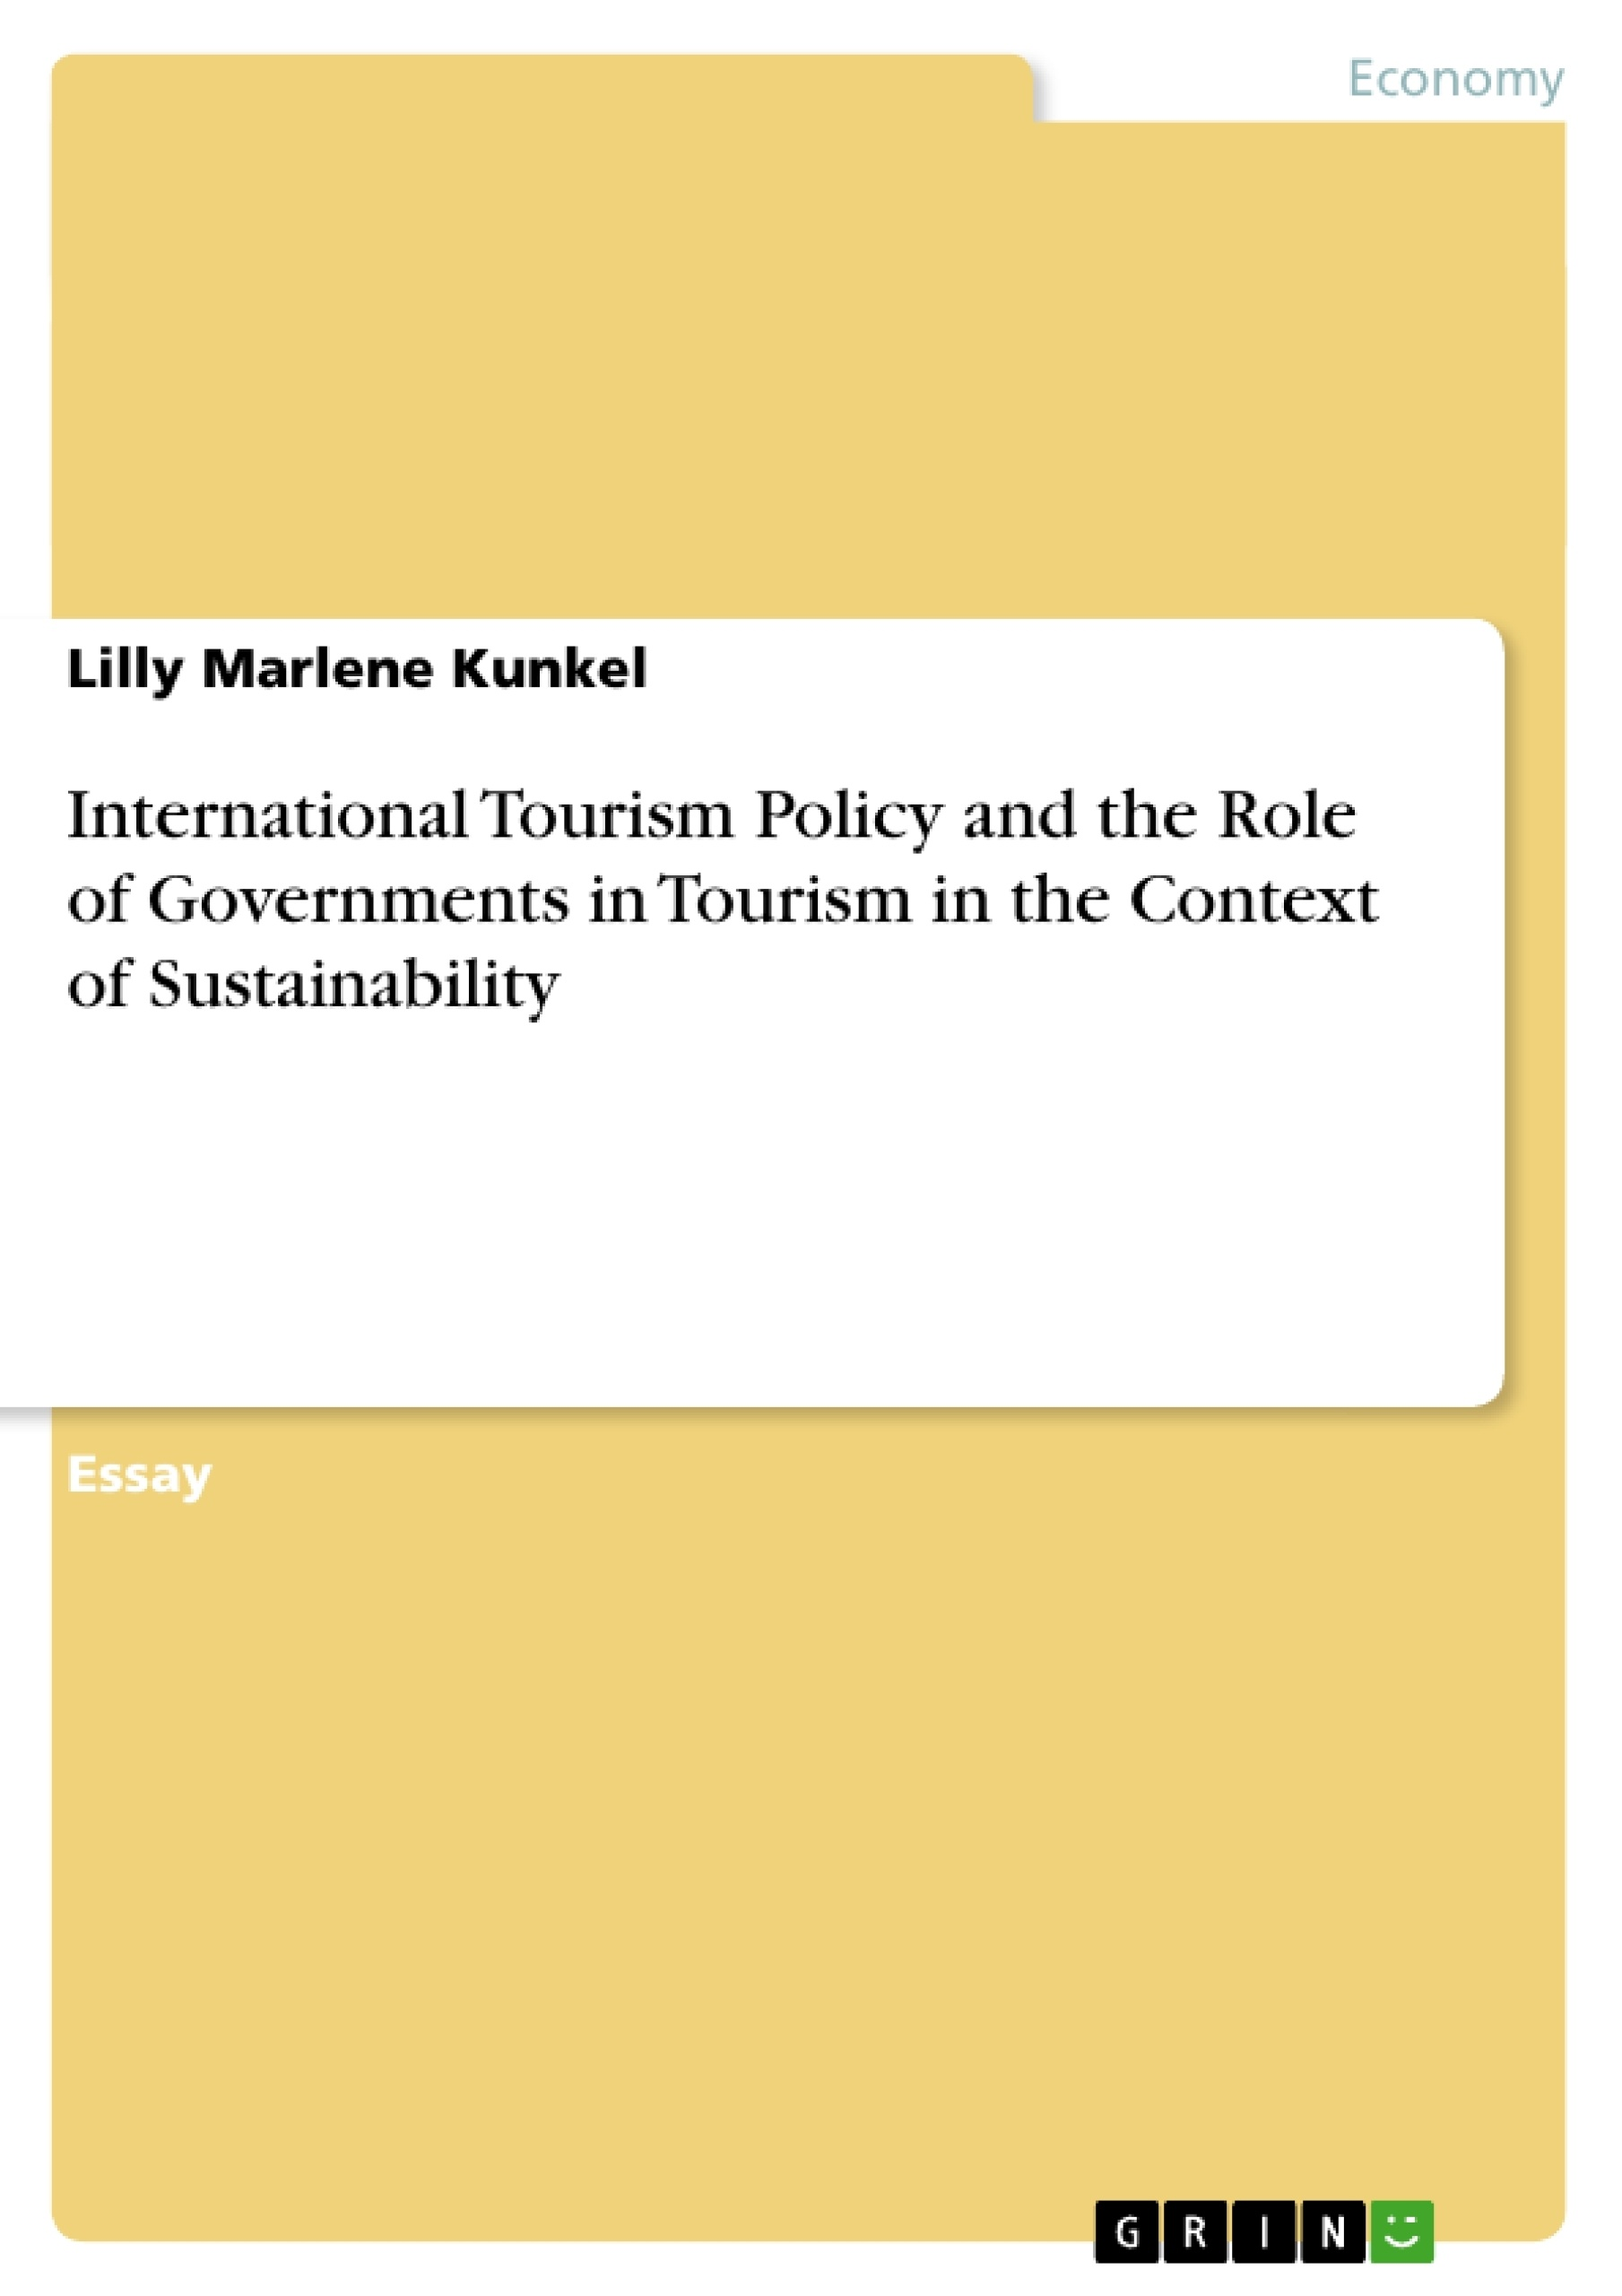 Title: International Tourism Policy and the Role of Governments in Tourism in the Context of Sustainability